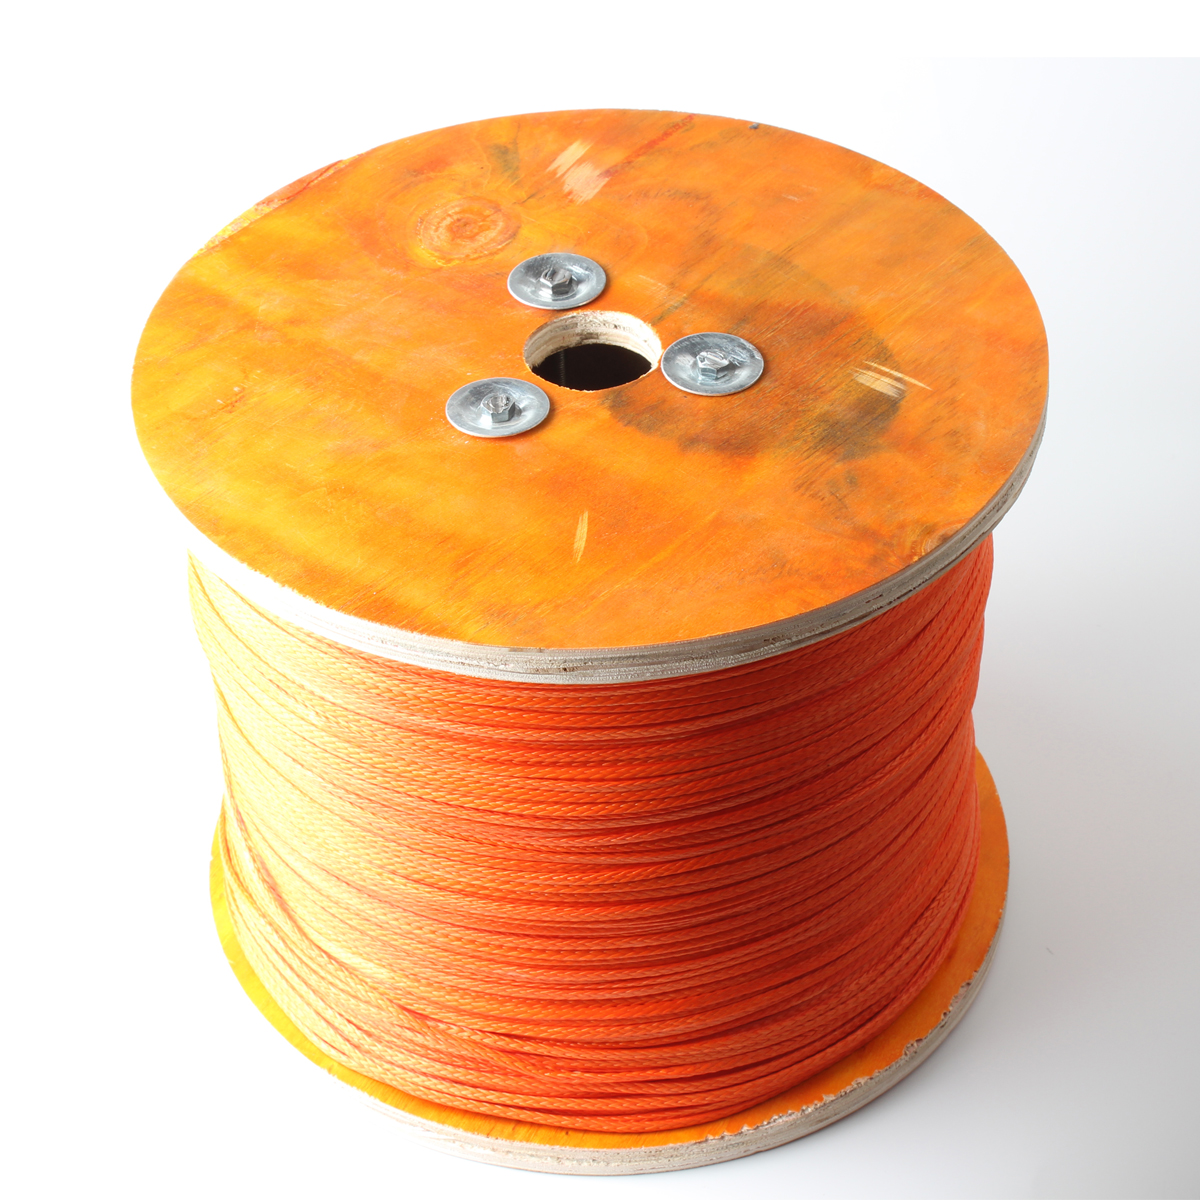 "3mm 1/8"" Uhmwpe wakeboard winch rope"